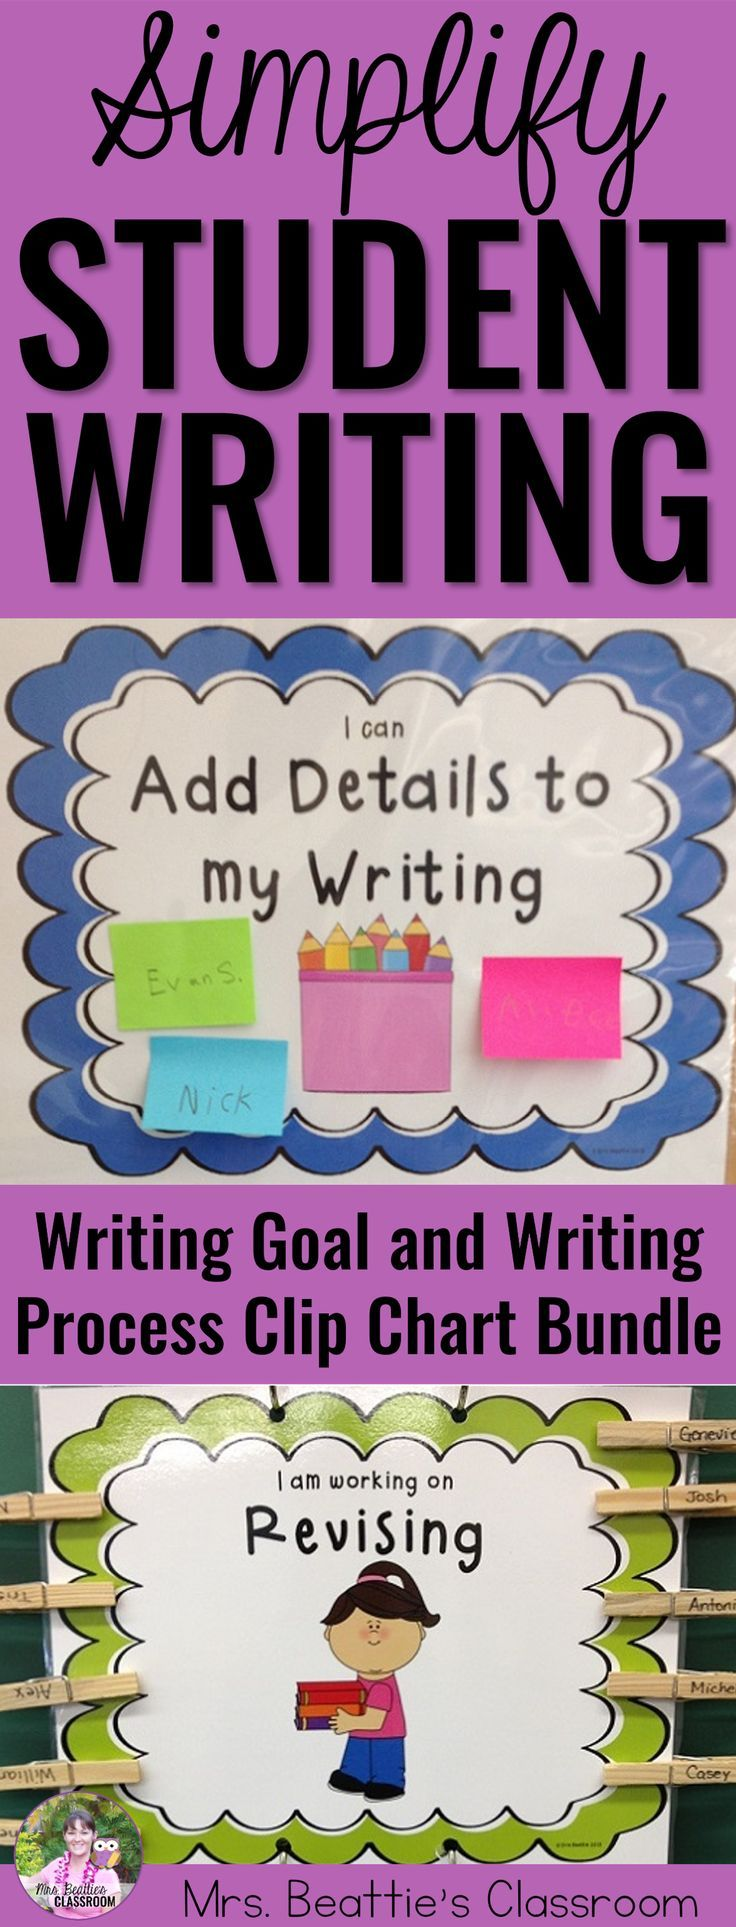 goal writing Personal goal setting  set smart (specific, measureable, attainable, relevant and time-bound) goals that motivate you and write them down to make them feel tangible then plan the steps you must take to realize your goal, and cross off each one as you work through them.